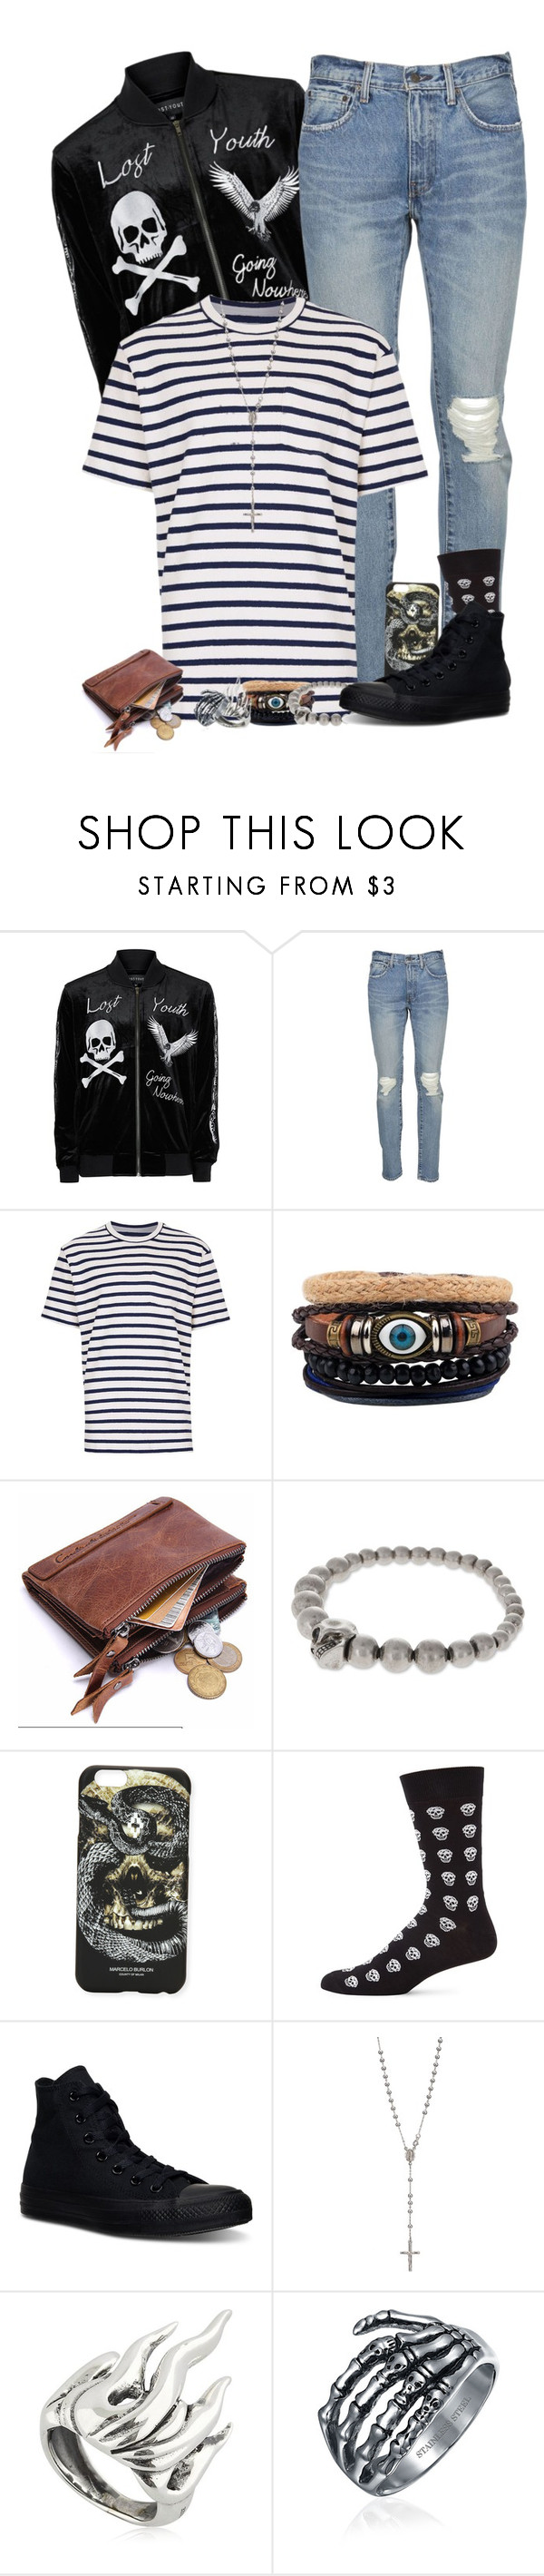 """""""Matt- Just go with it..."""" by shadesofcharm ❤ liked on Polyvore featuring Topman, Levi's, Alexander McQueen, Marcelo Burlon, Converse, Cantini MC Firenze, Bling Jewelry, men's fashion and menswear"""